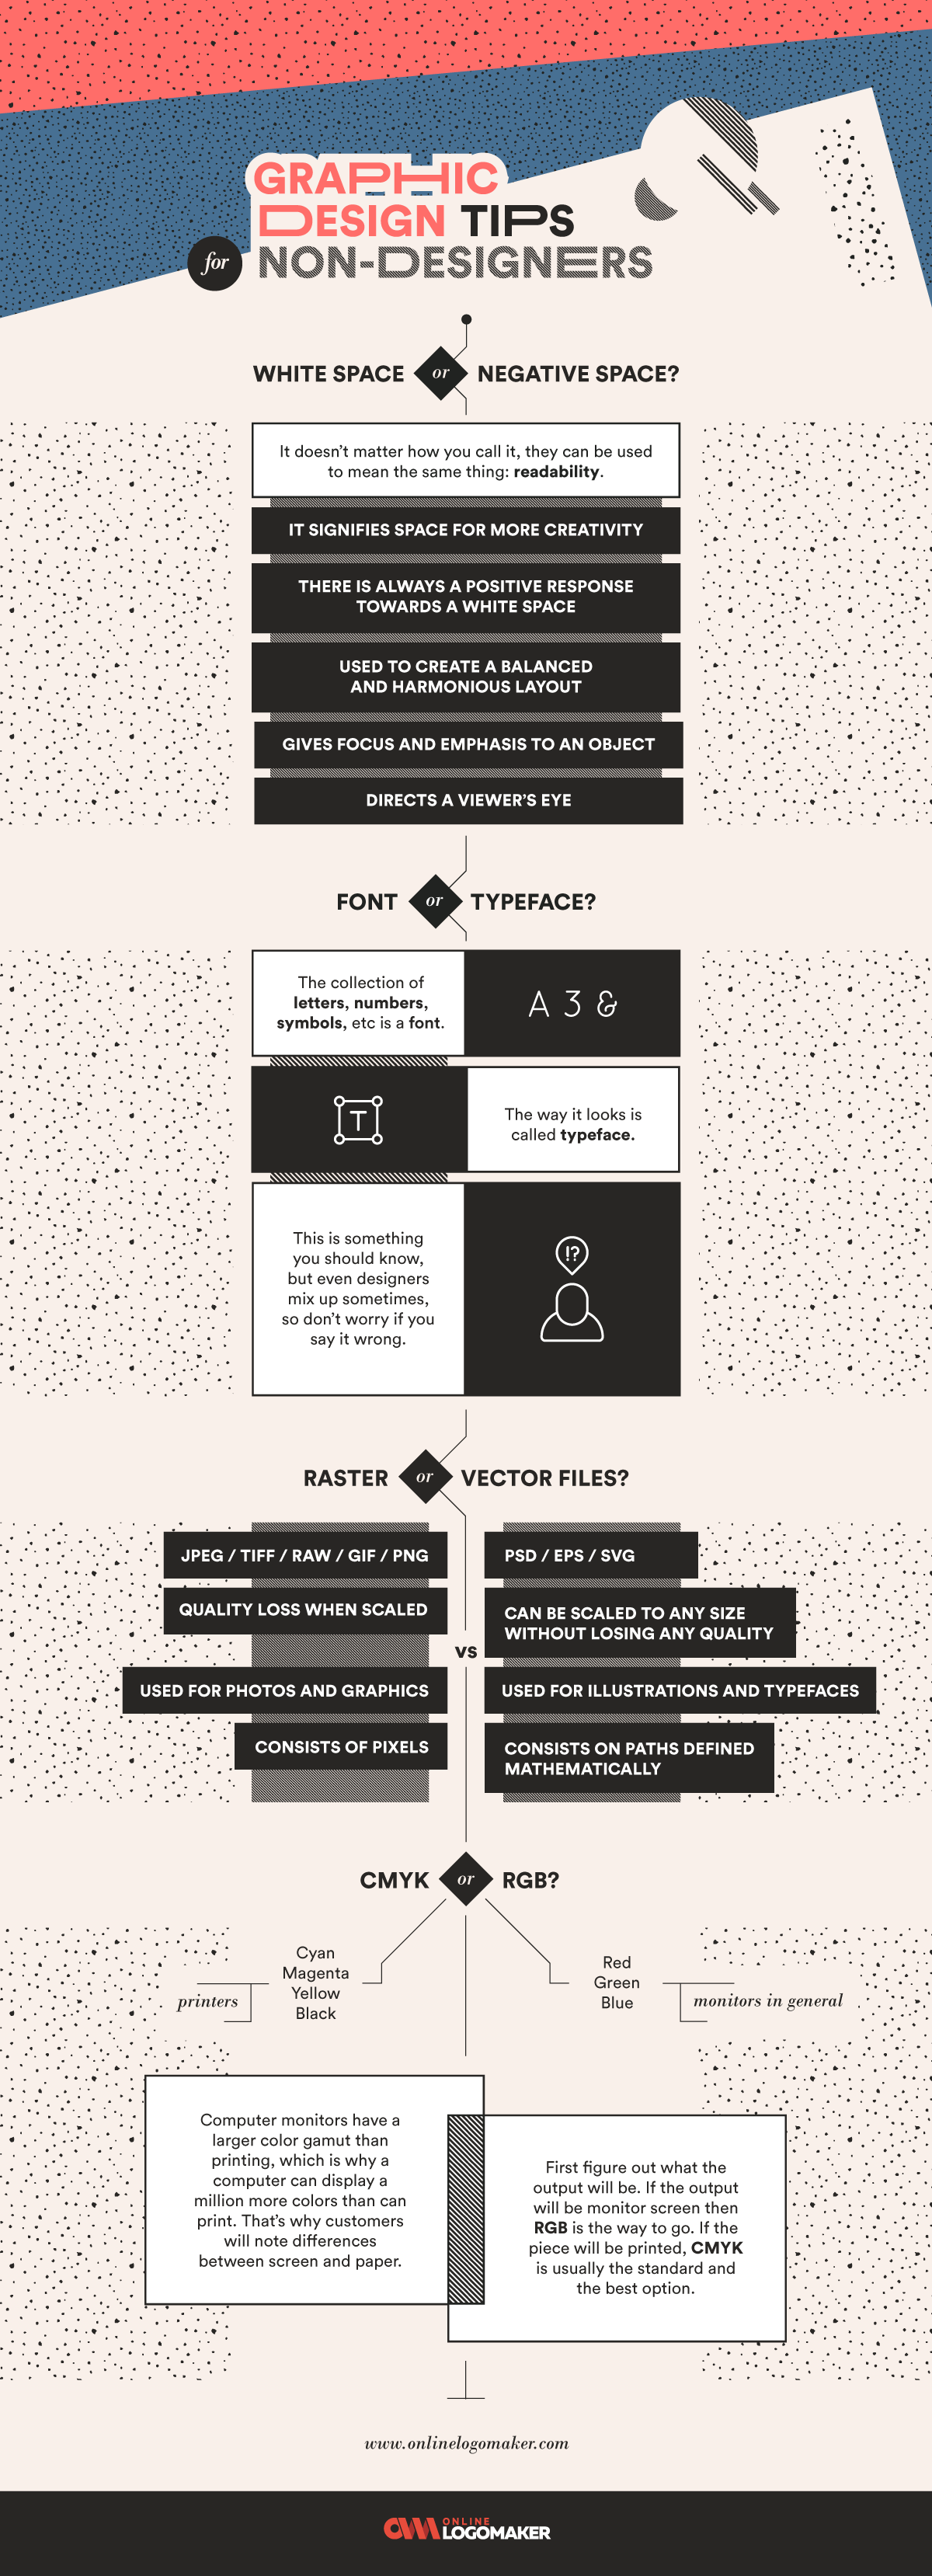 Best design tips for nondesigners on infographic